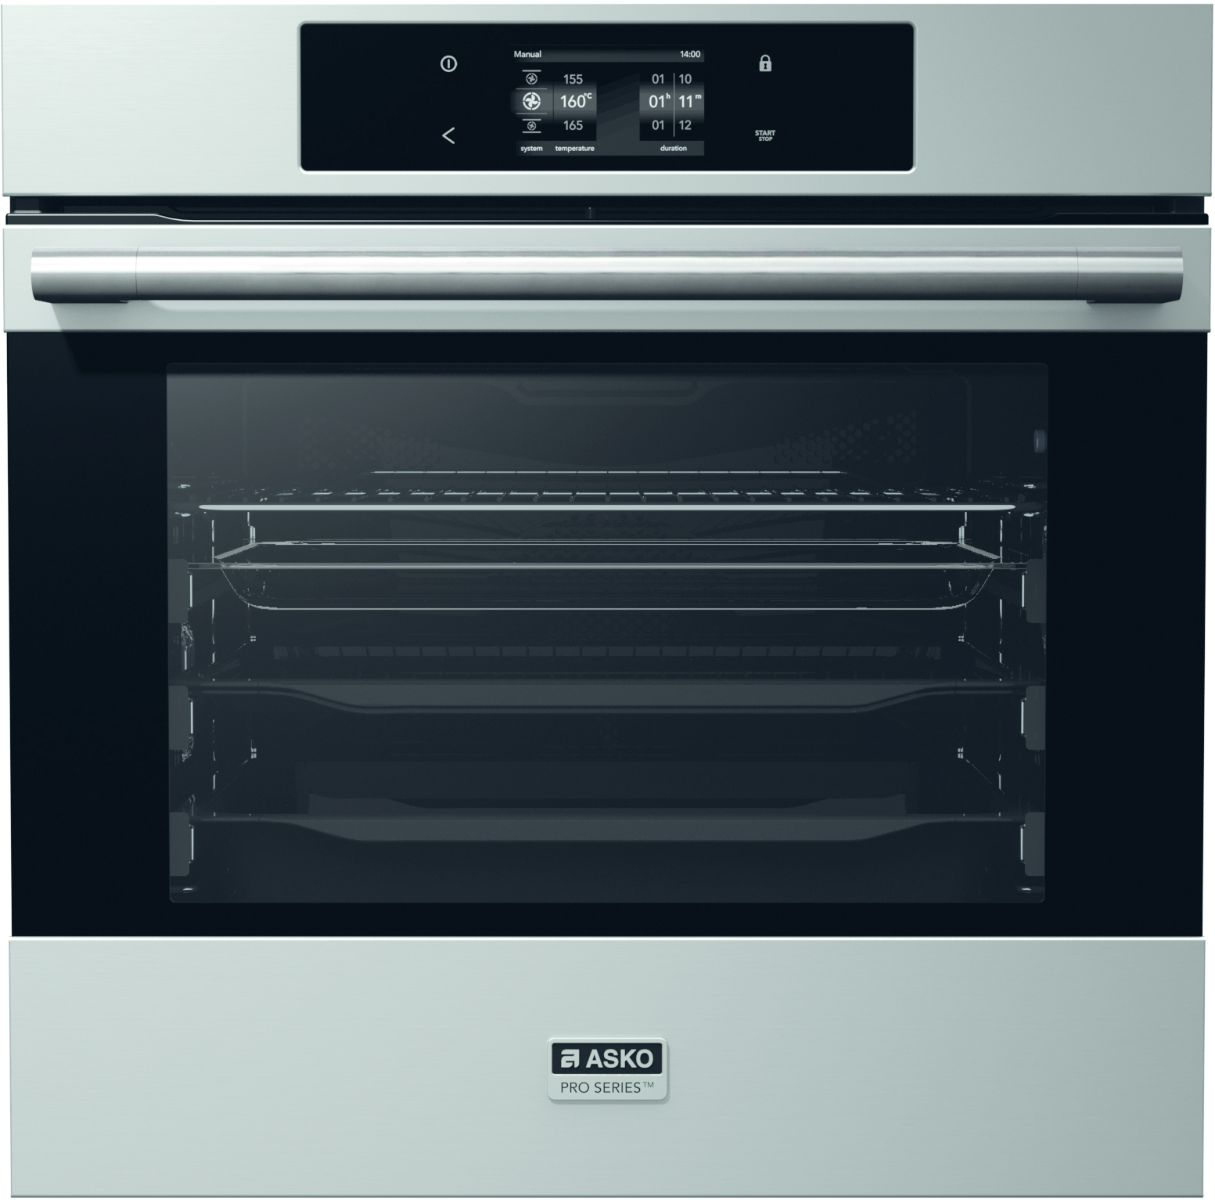 asko op8676s reviews productreview com au rh productreview com au Double Oven Electric Range Frigidaire Gallery Oven Manual